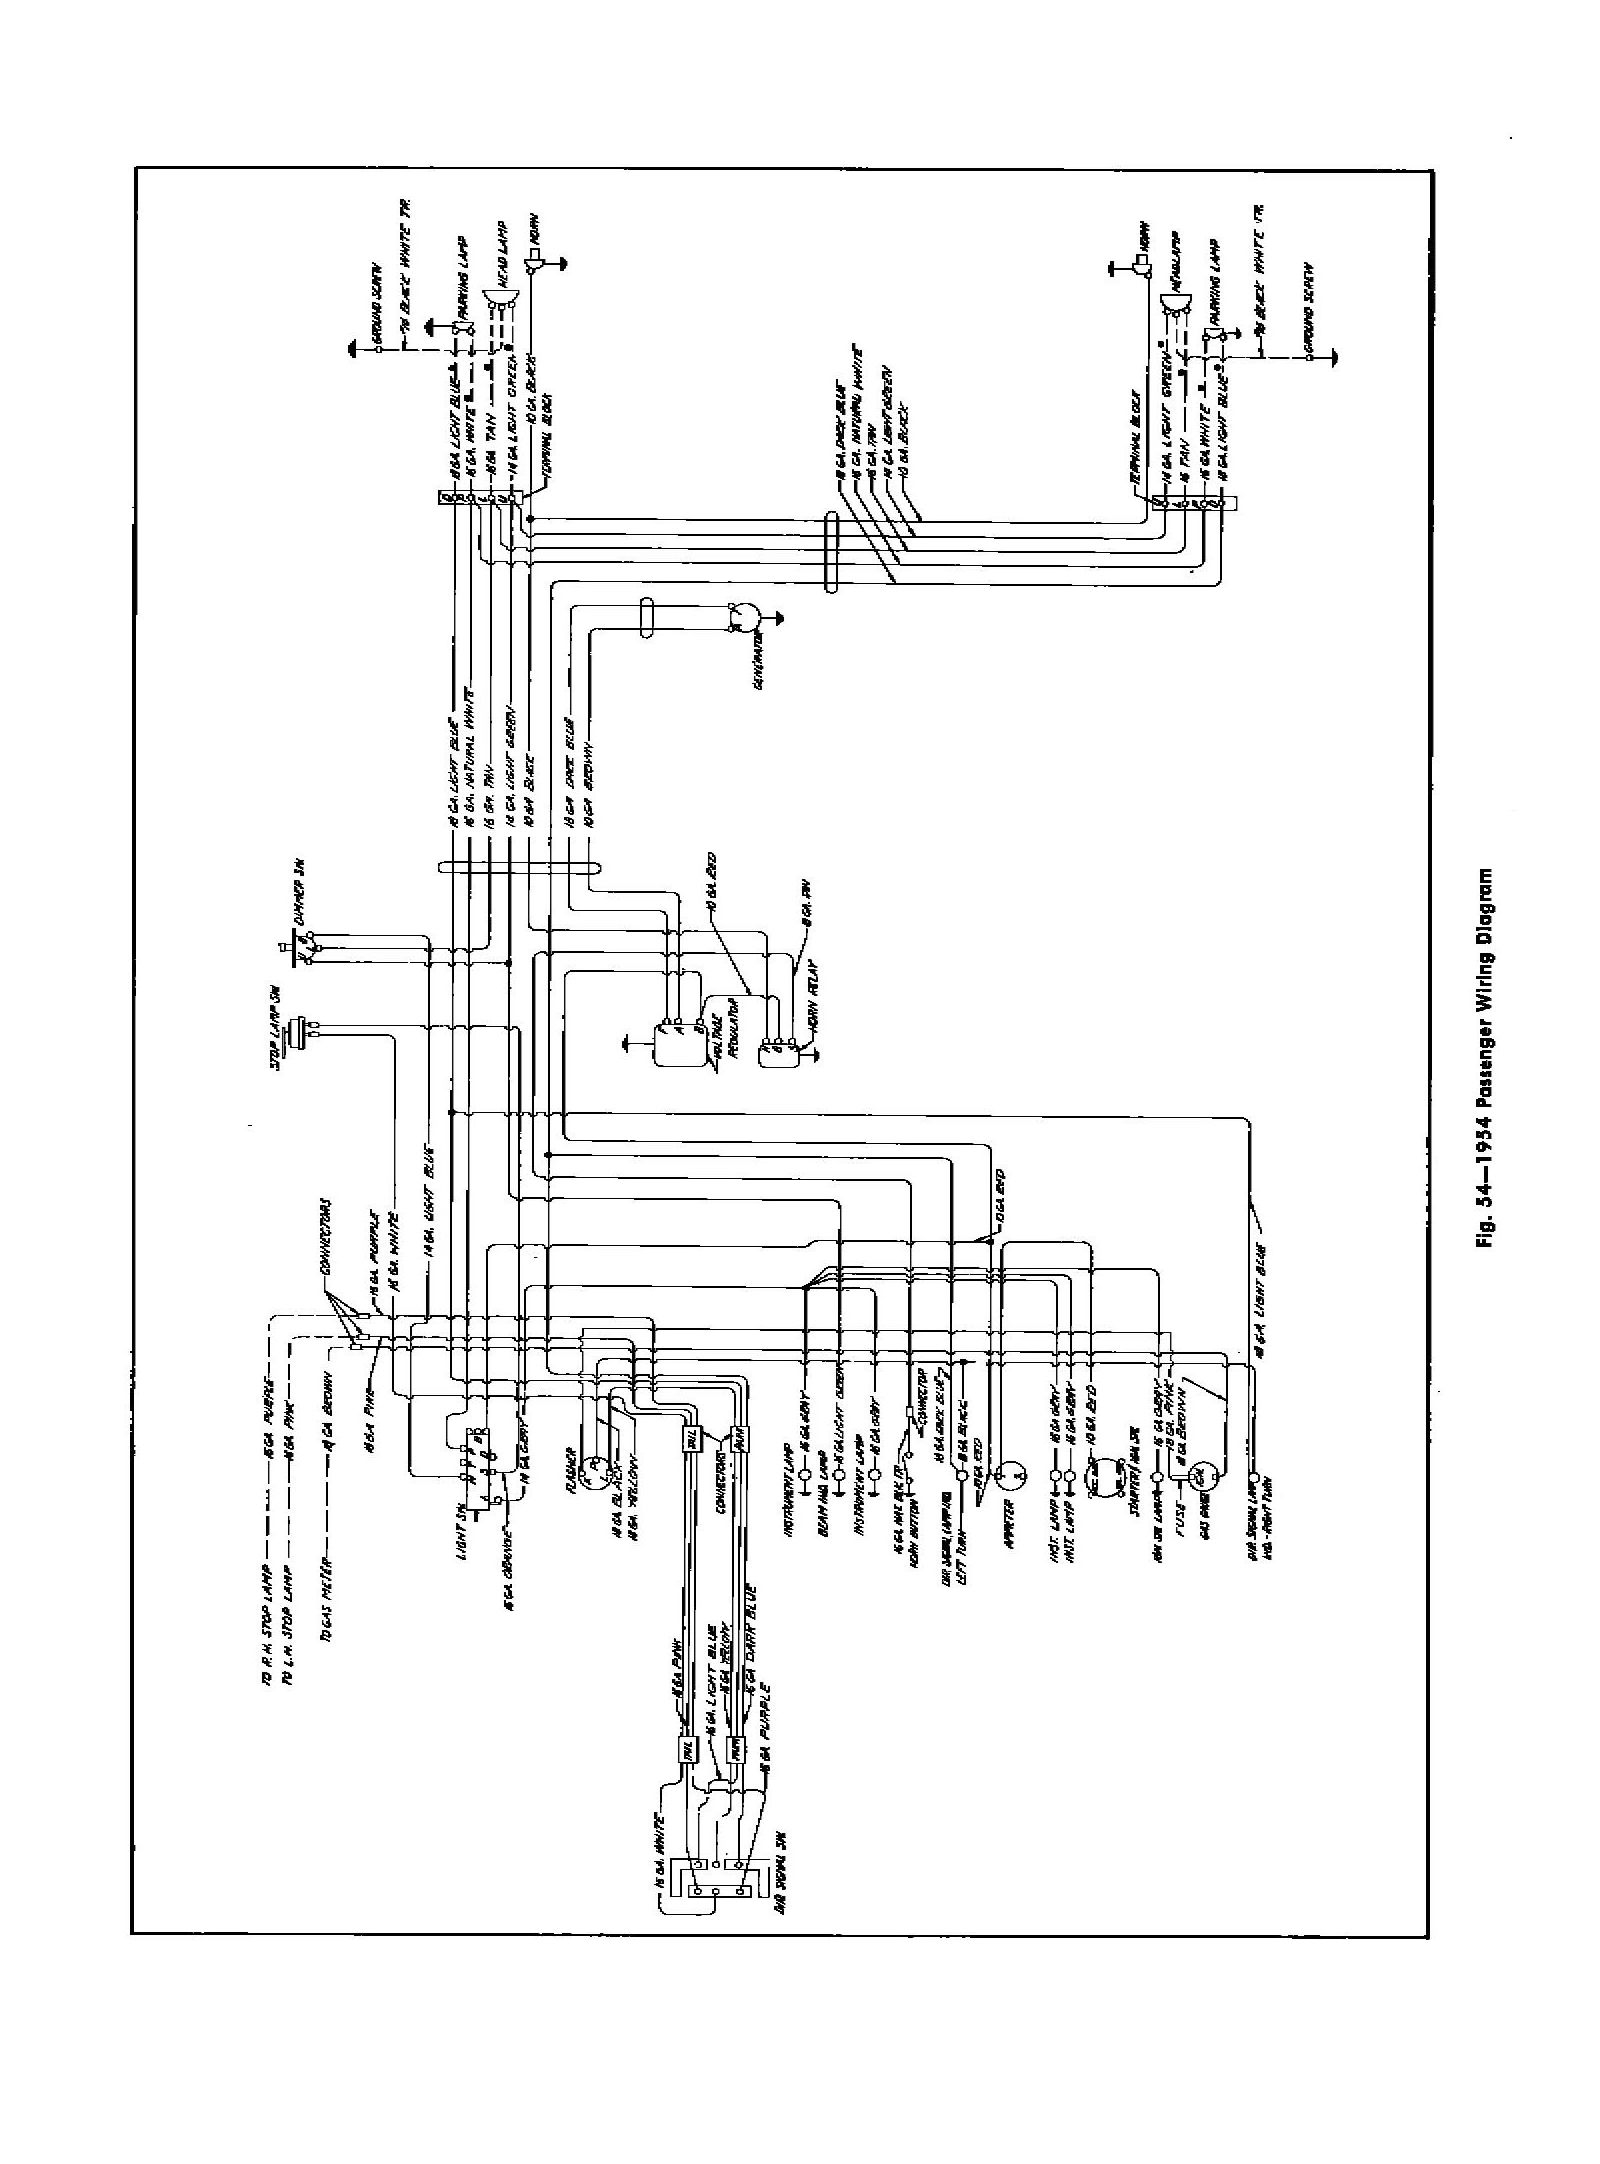 hight resolution of chevy wiring diagrams 1977 corvette wiring diagram 1954 corvette wiring diagram